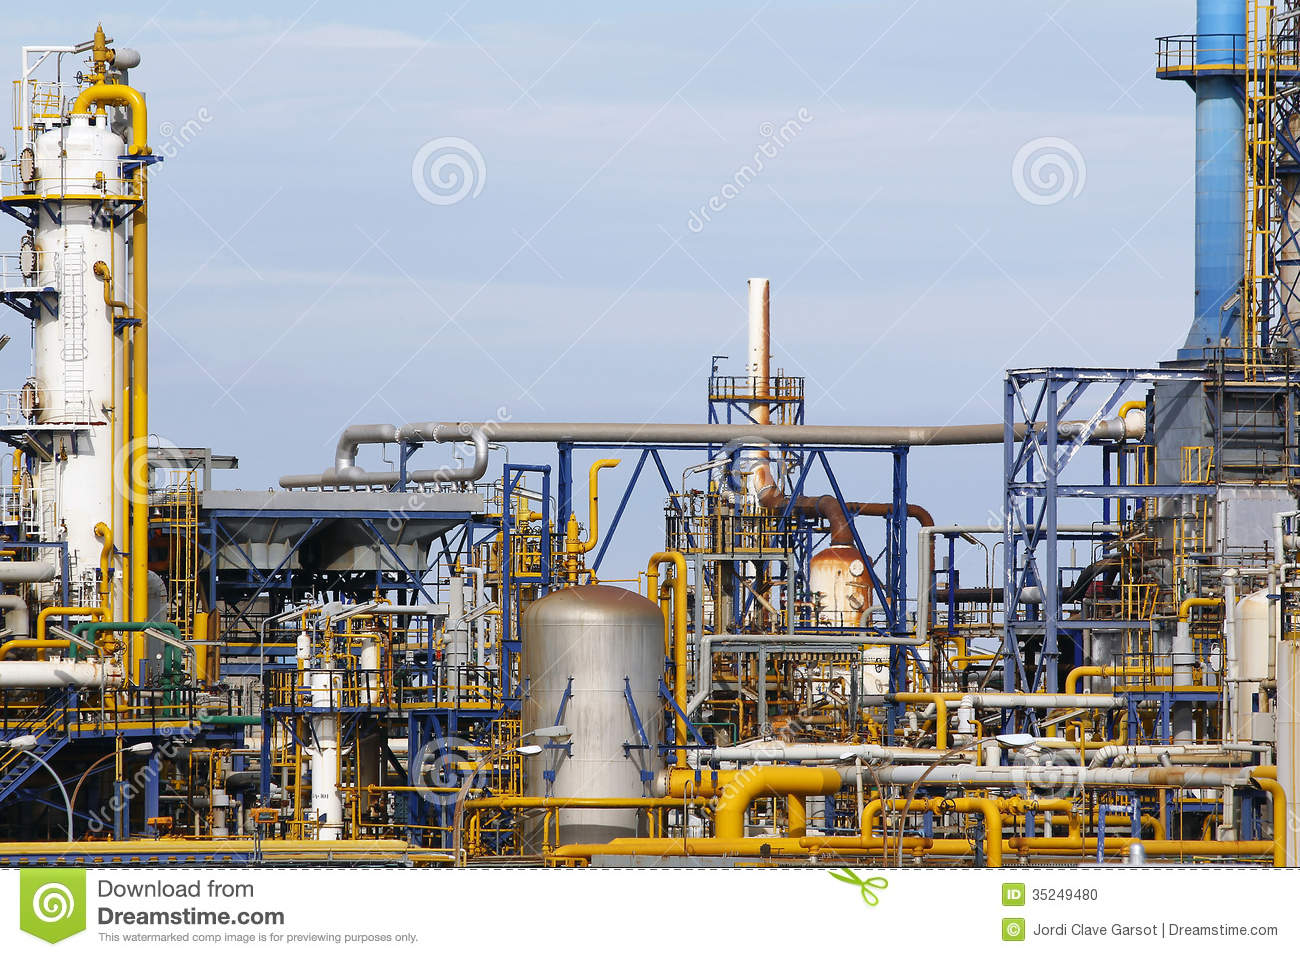 Equipements Industriels Équipements Industriels Photo Stock - Image: 35249480